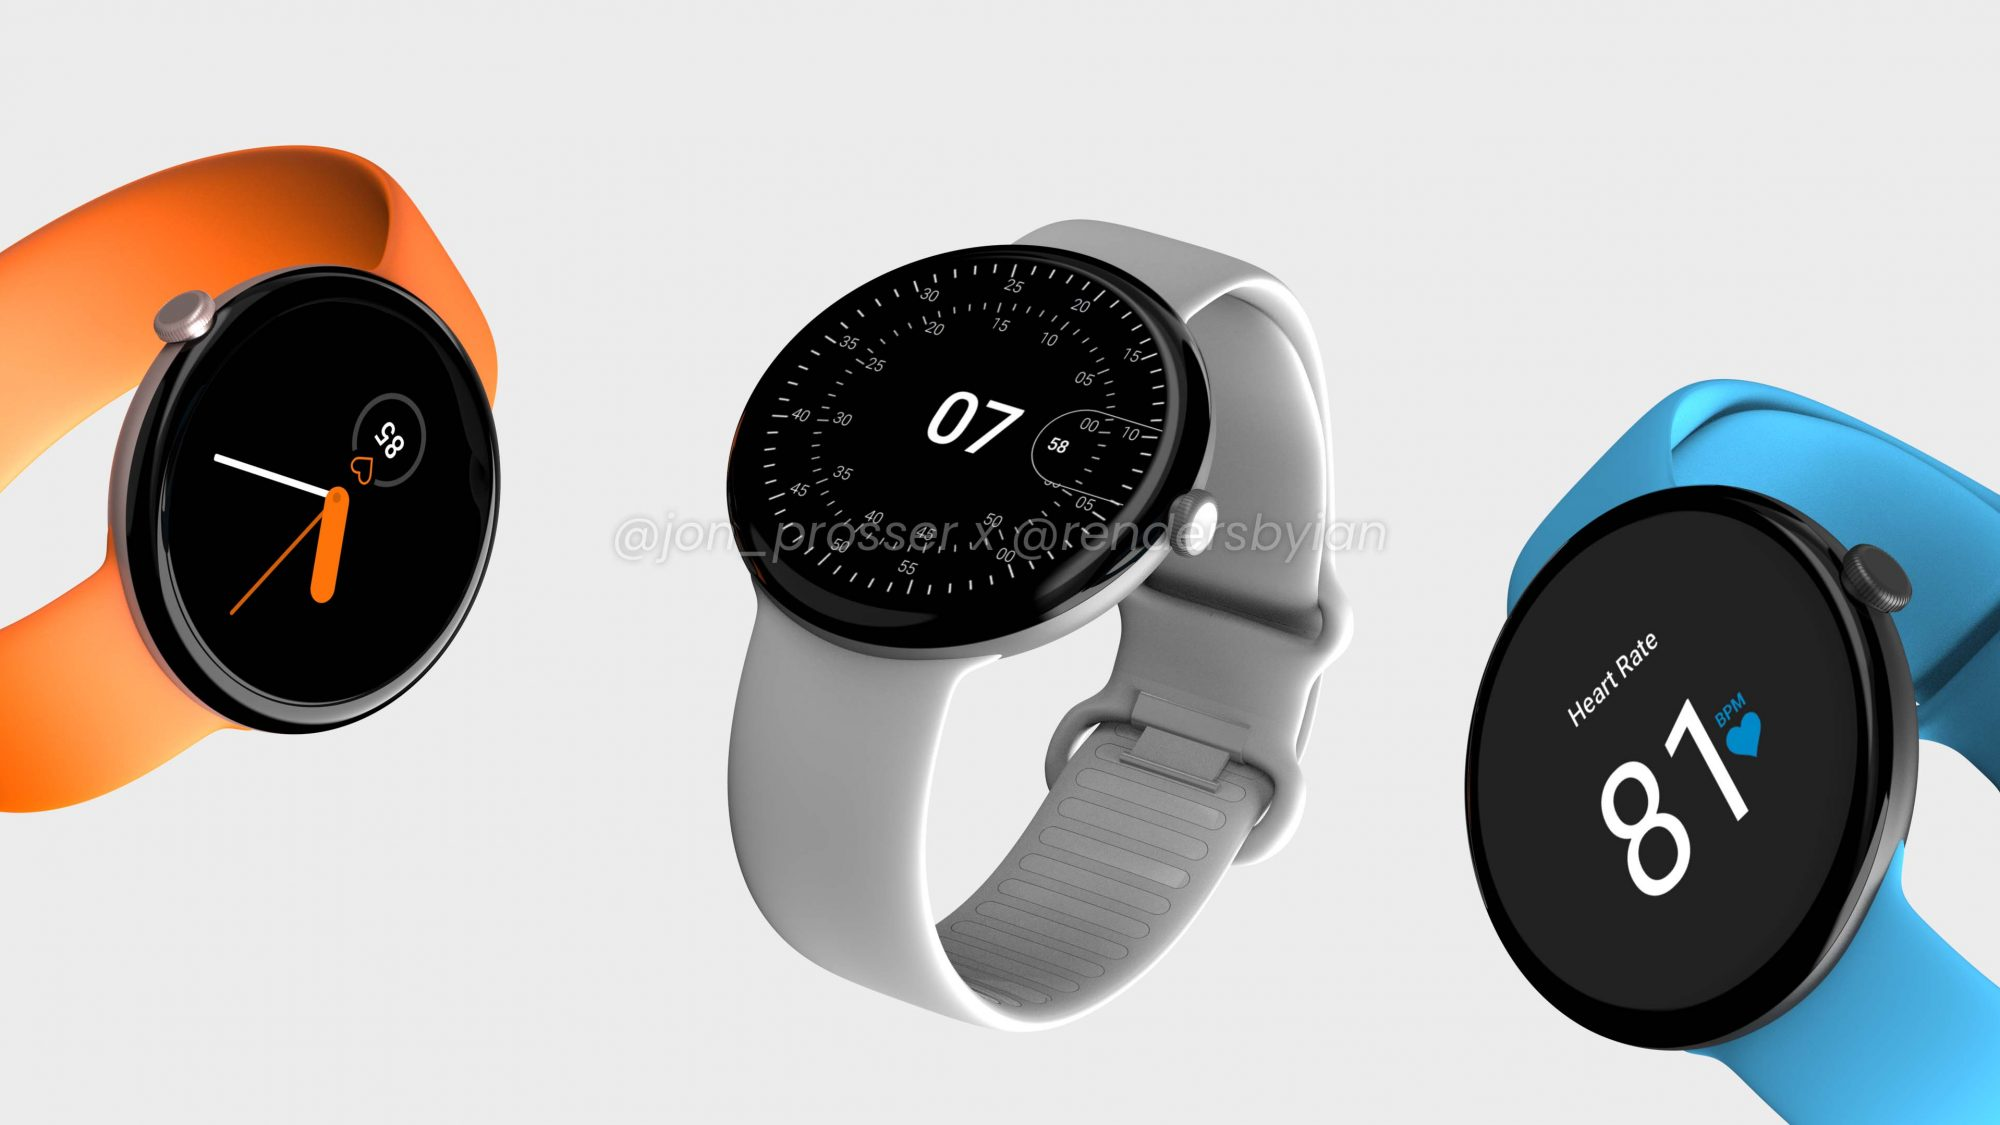 Pixel Watch renders show a gorgeous wearable with clean, elegant software